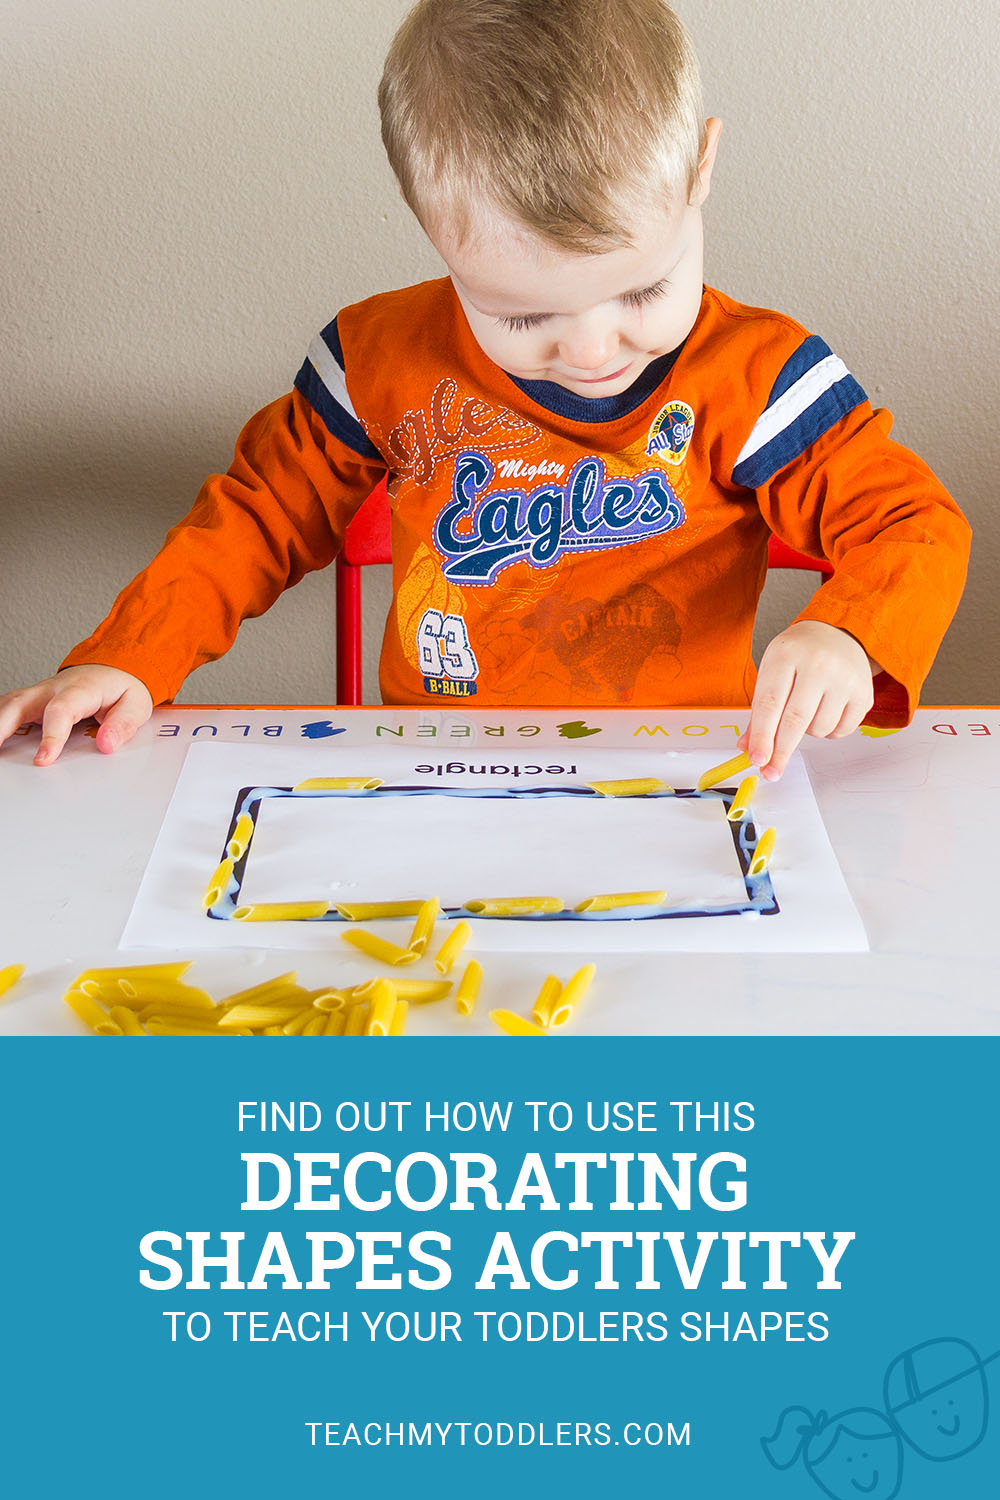 Find out how to use this decorating shapes activity to teach toddlers shapes